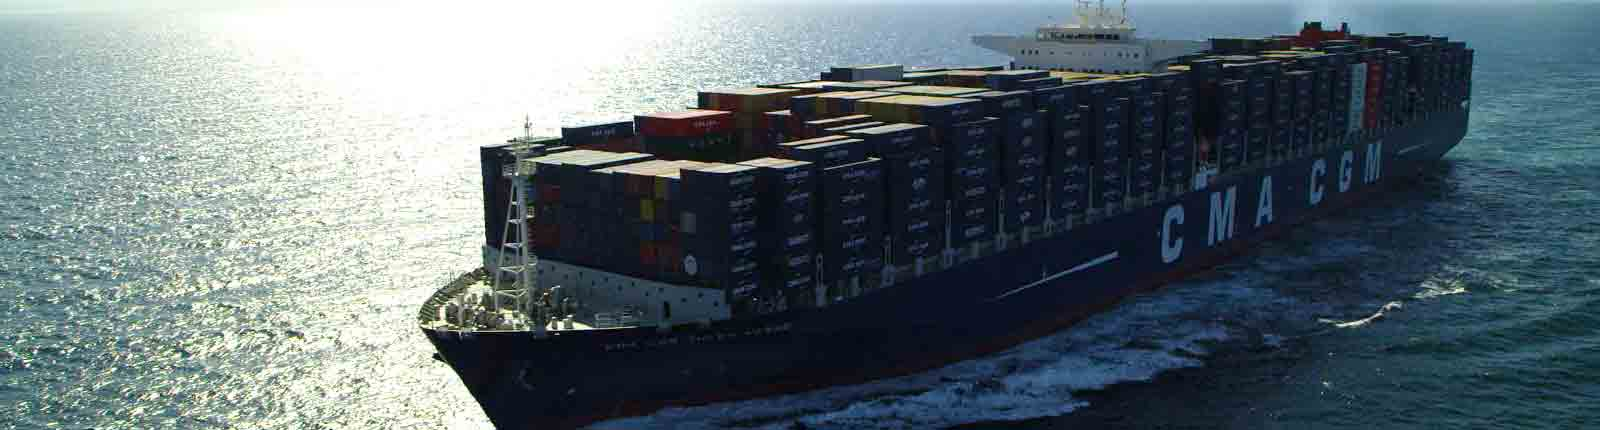 CMA CGM to levy Asia-Mideast/Med/ECSA rate increases